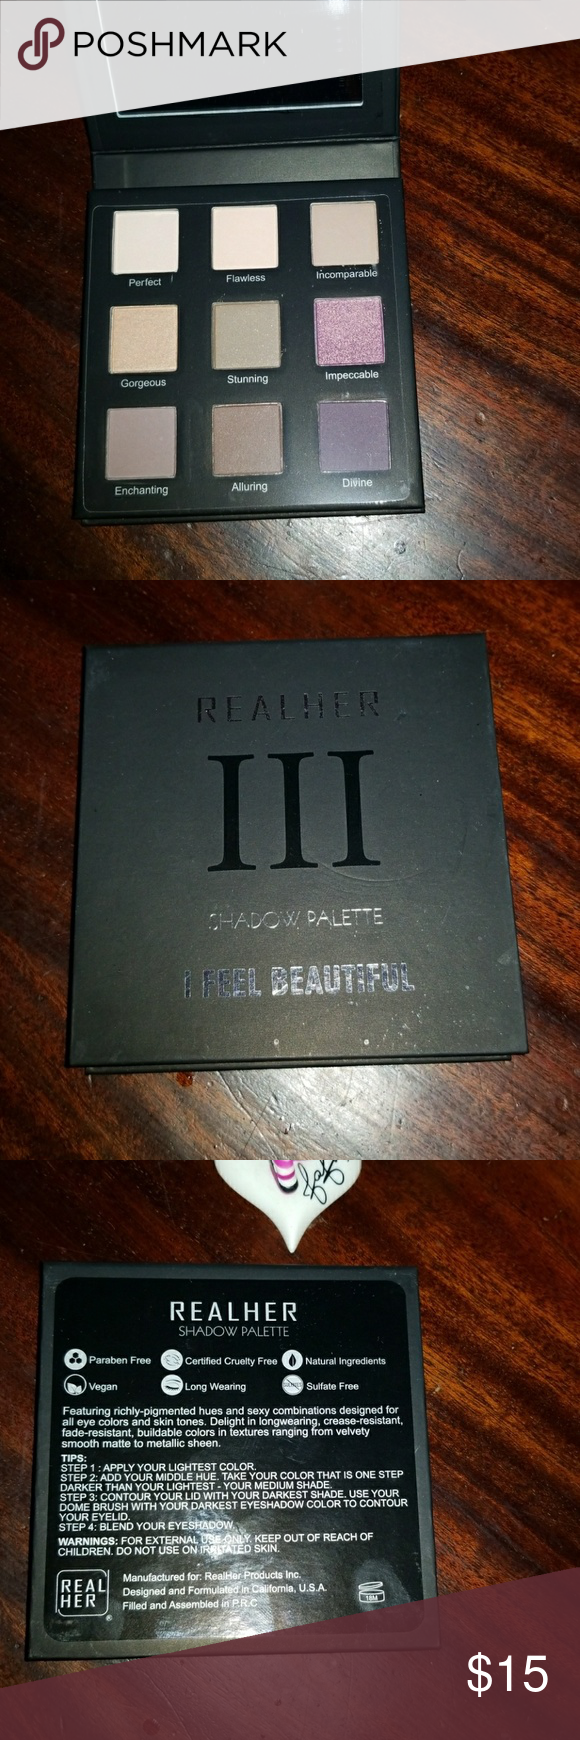 """RealHer Eyeshadow Palette """"I Feel Beautiful"""" Brand new This palette has richly-pigmented hues and sexy combinations designed for all eye colors and skin tones. Delight in long-wearing, crease-resistant, fade-resistant, buildable colors in textures ranging from velvety smooth mattes to metallic sheens. Sephora Makeup Eyeshadow"""